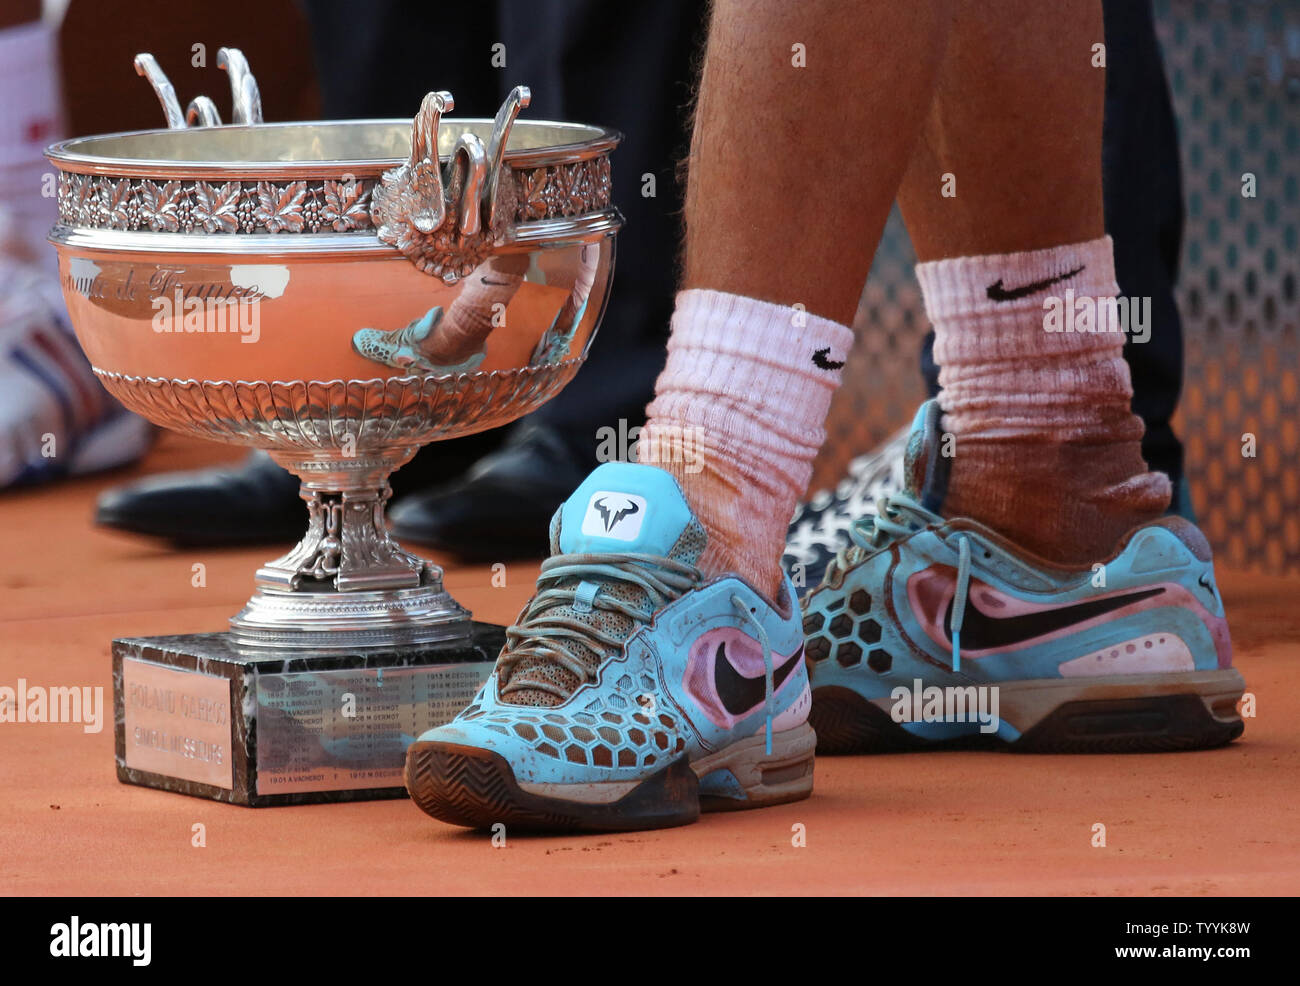 The Shoes And Trophy Of Rafael Nadal Of Spain Are Seen After His French Open Men S Final Match Against Novak Djokovic Of Serbia At Roland Garros In Paris On June 8 2014